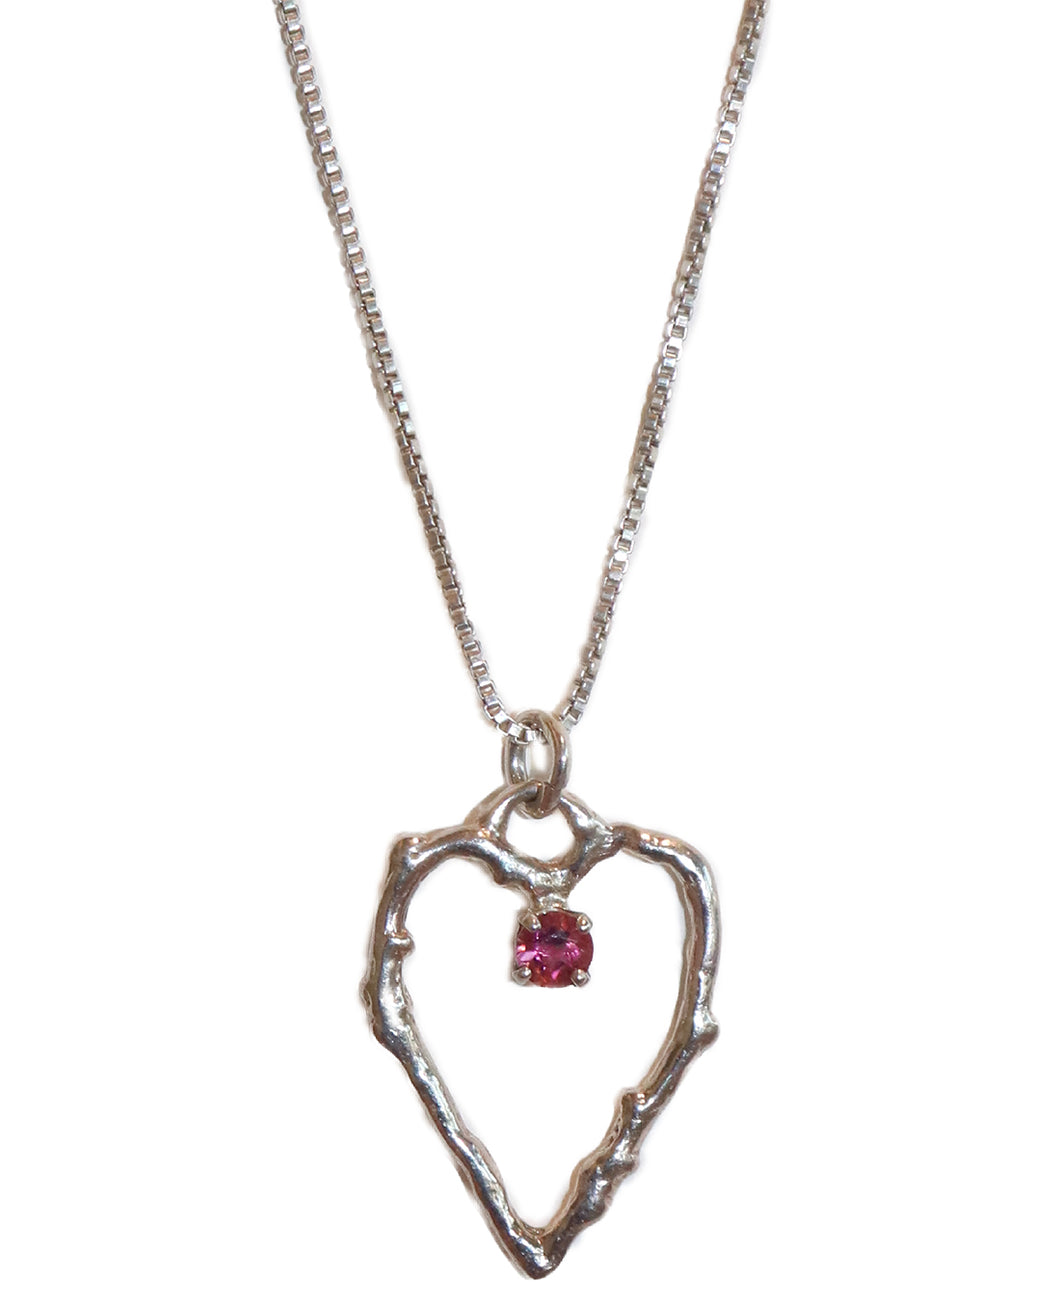 Twig Heart Necklace with Pink Tourmaline by Michelene Berkey